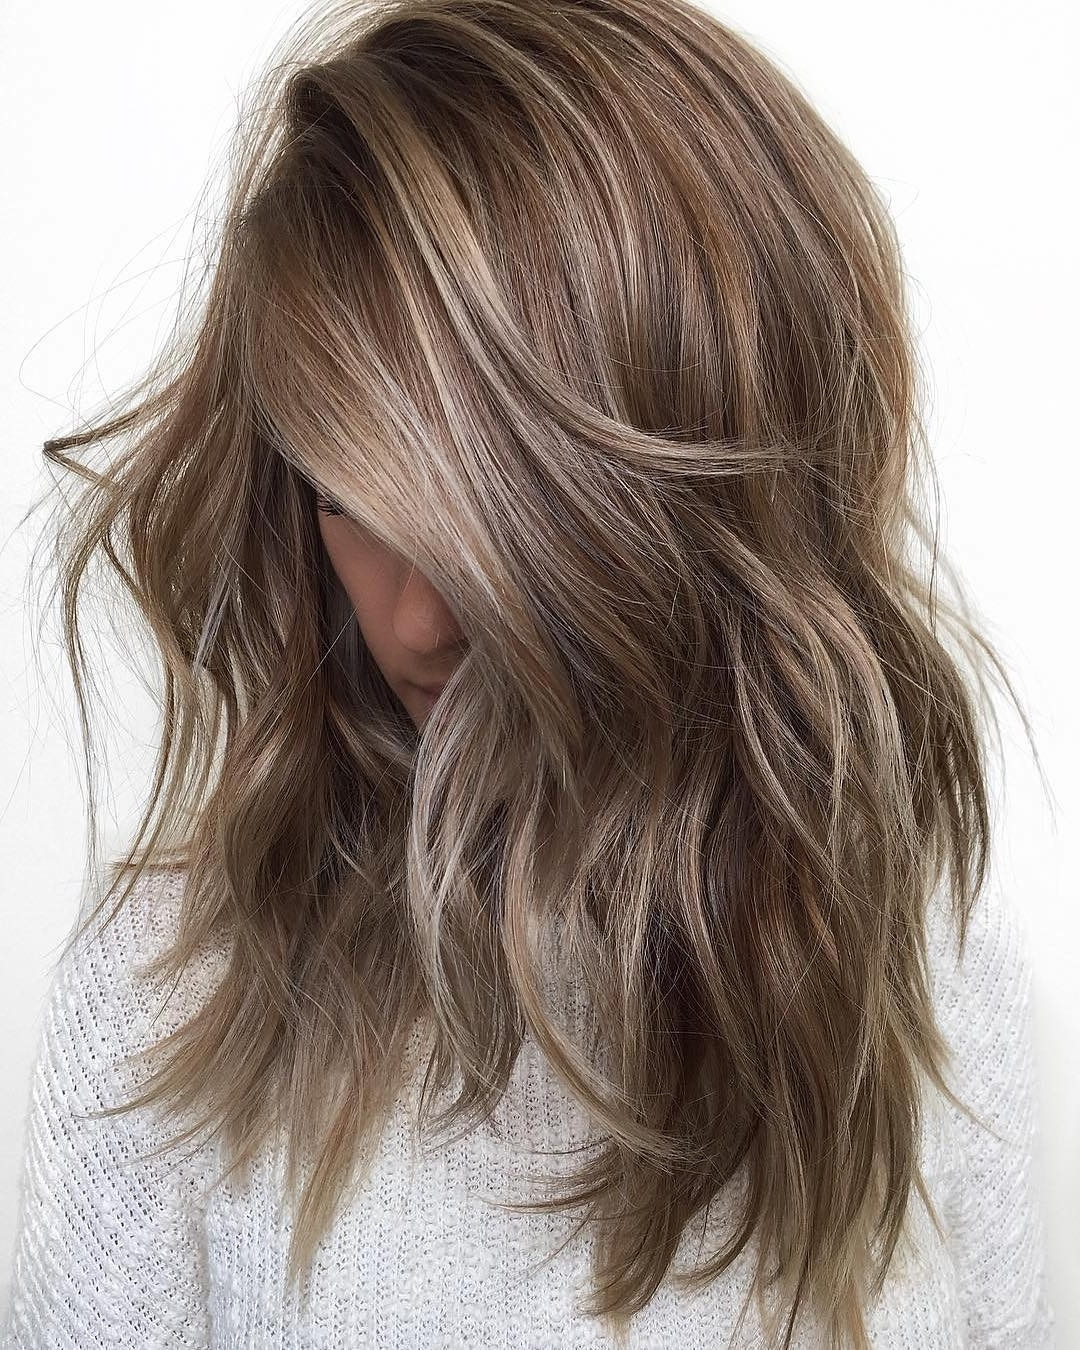 10 Medium Length Hair Color Heaven – Women Medium Hairstyles 2018 In Famous Shaggy Fade Blonde Hairstyles (View 2 of 20)